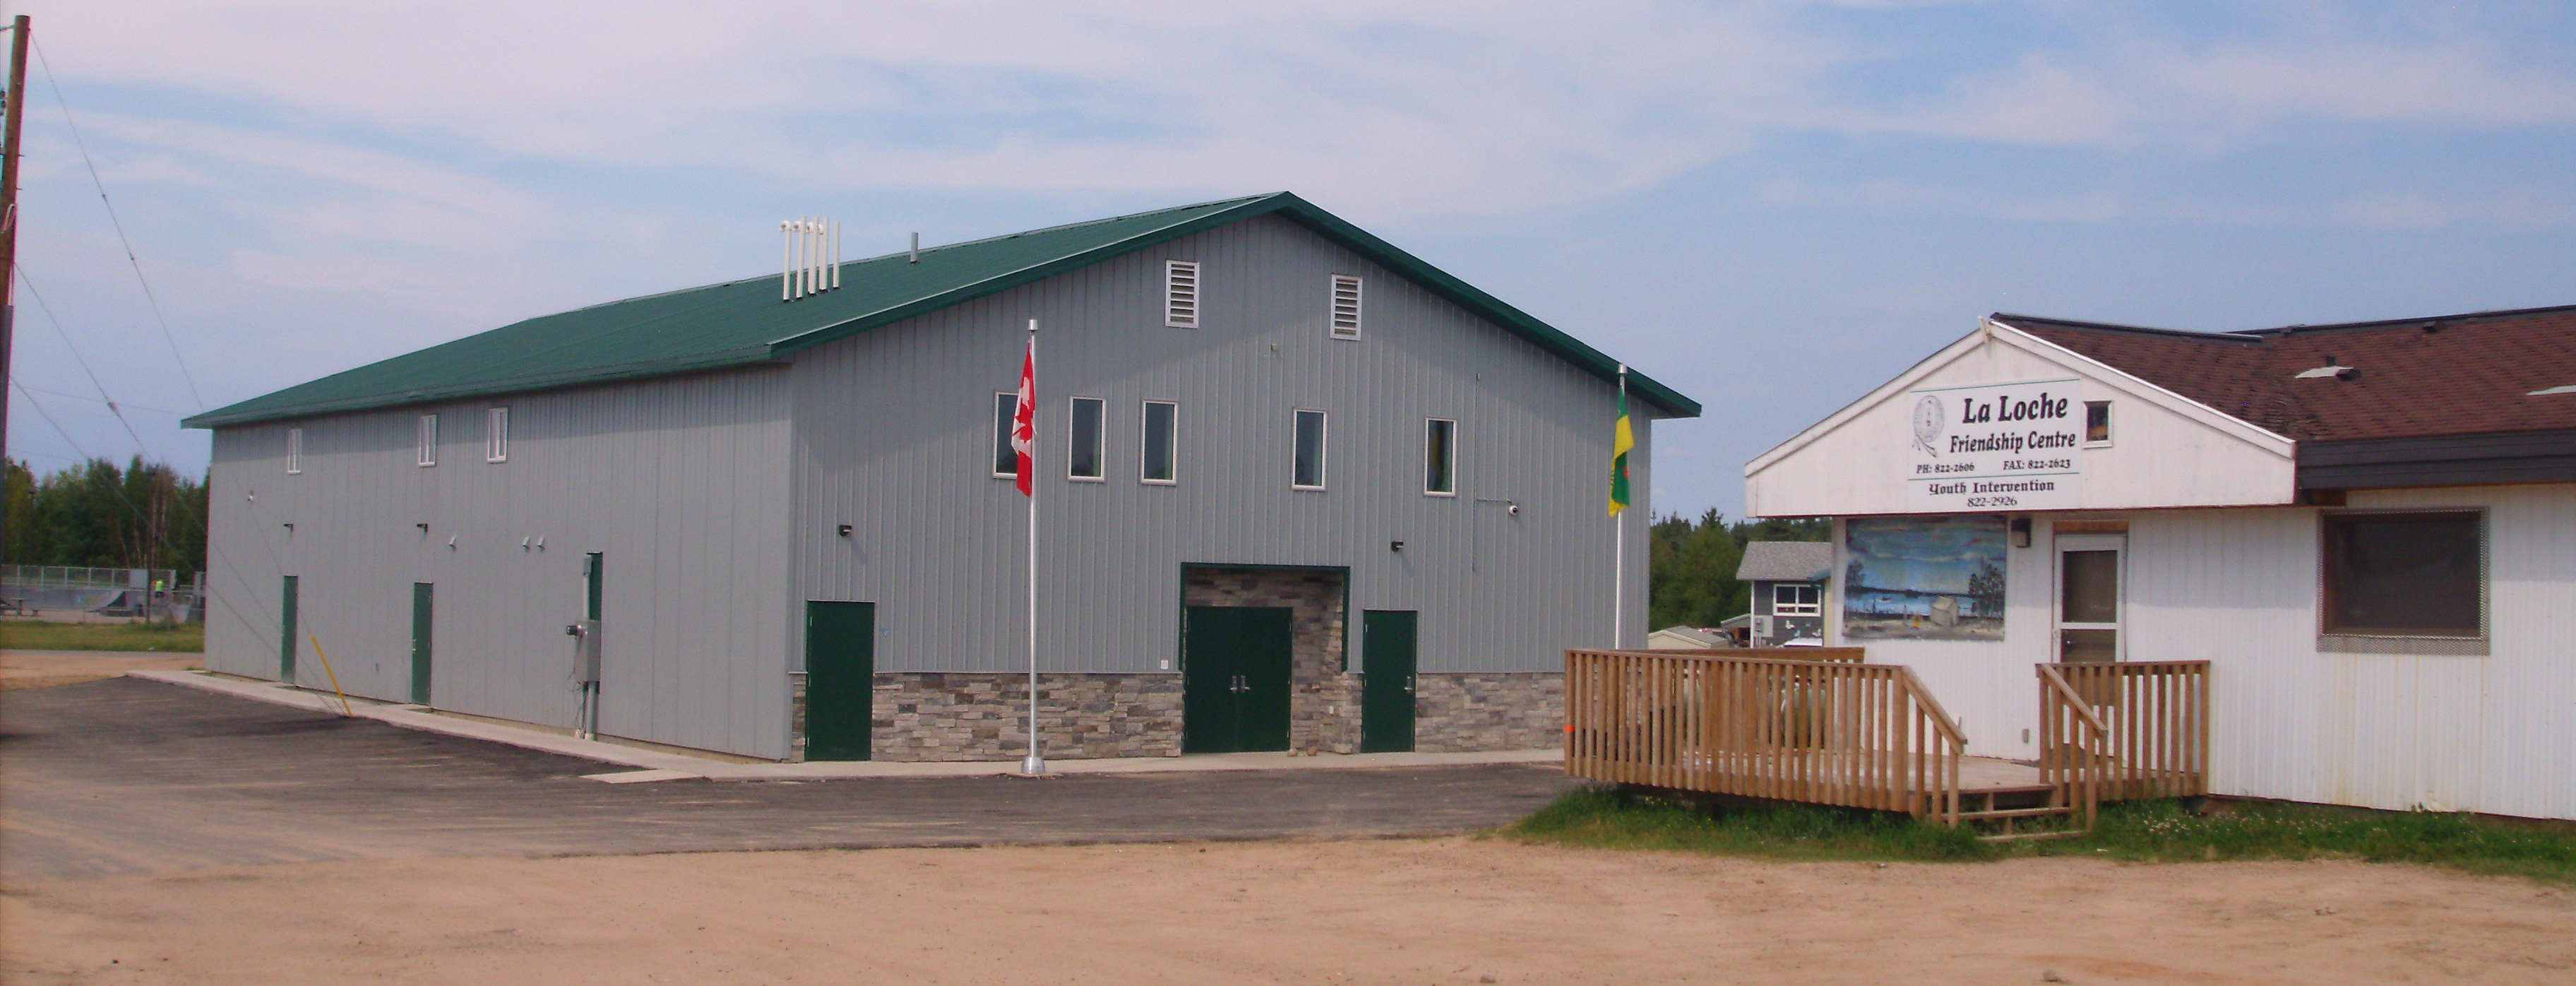 La Loche Friendship Centre